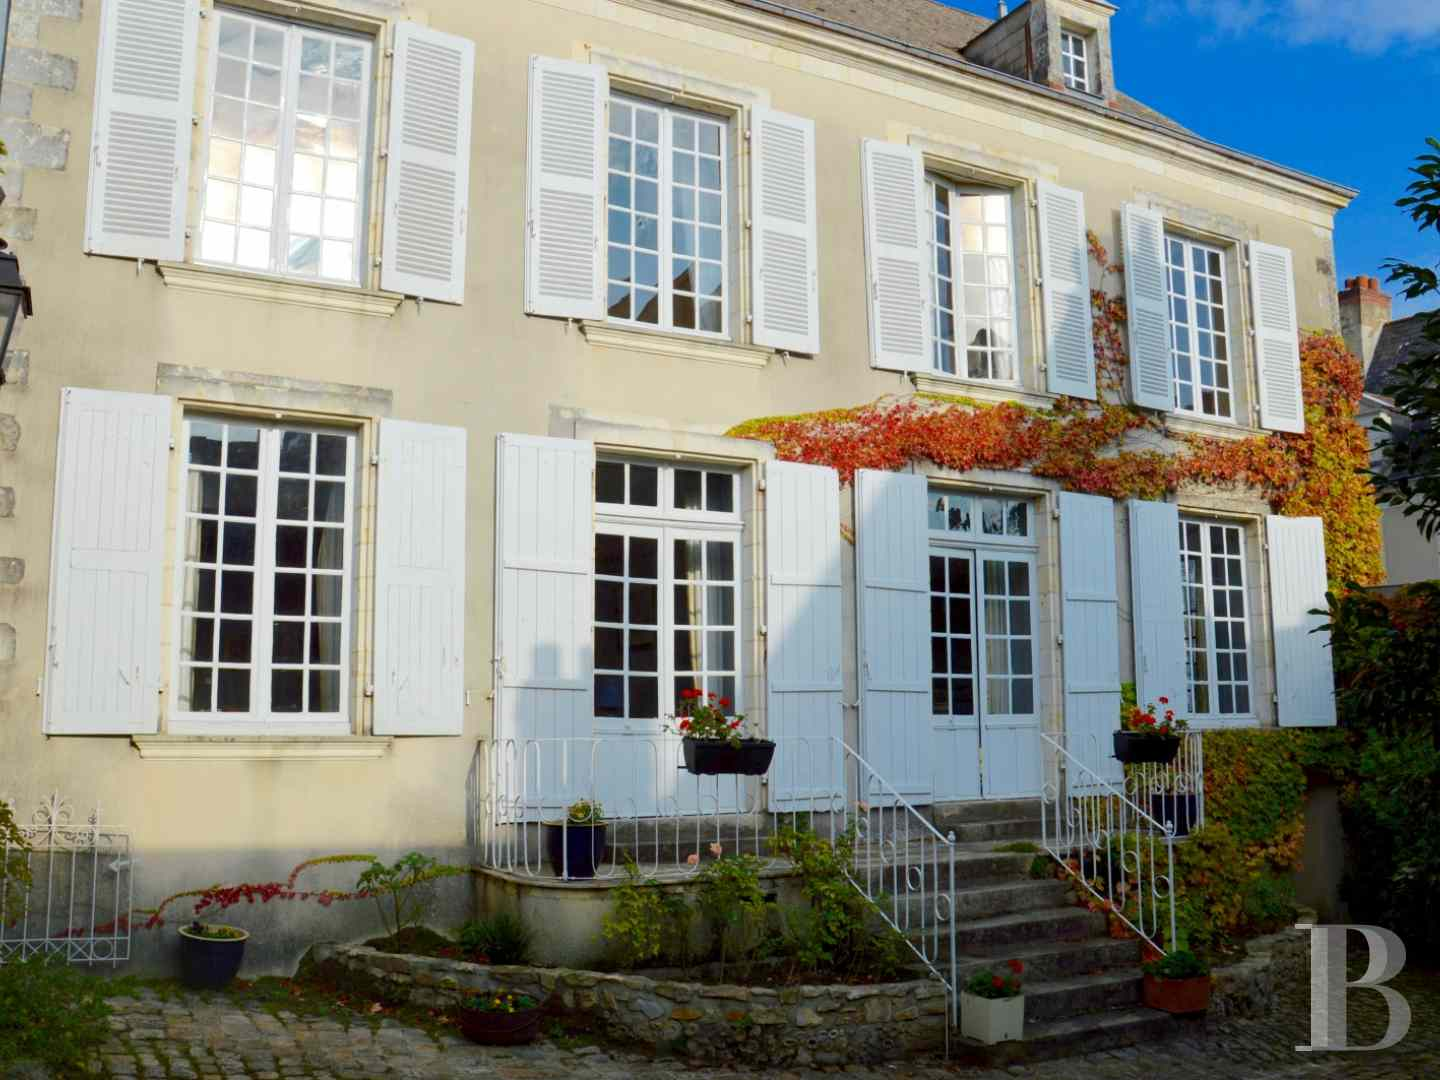 mansion houses for sale France pays de loire mansion houses - 1 zoom